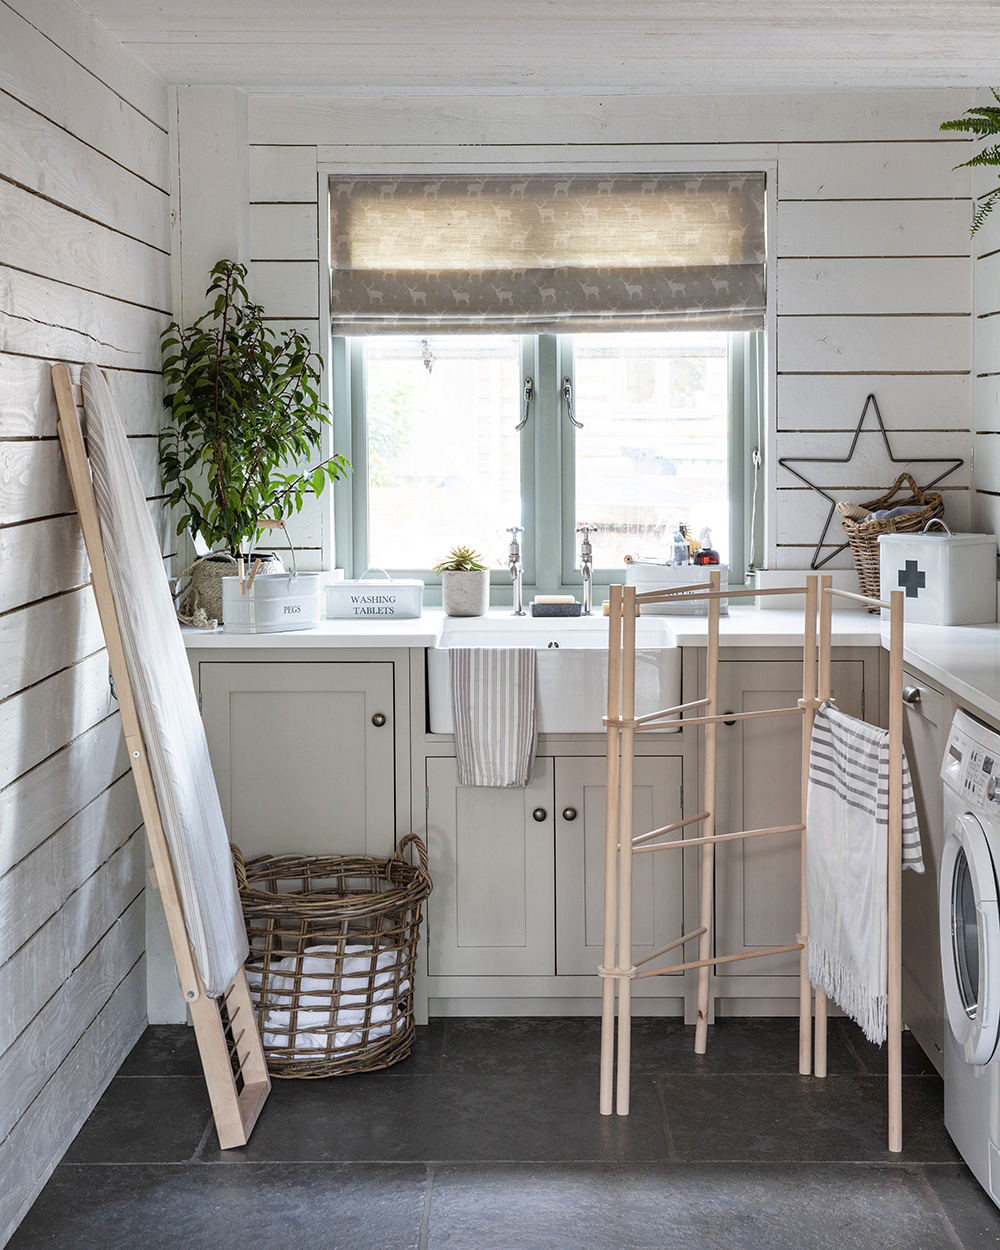 12 Small Utility Room Ideas Stylish But Practical Revamps Real Homes